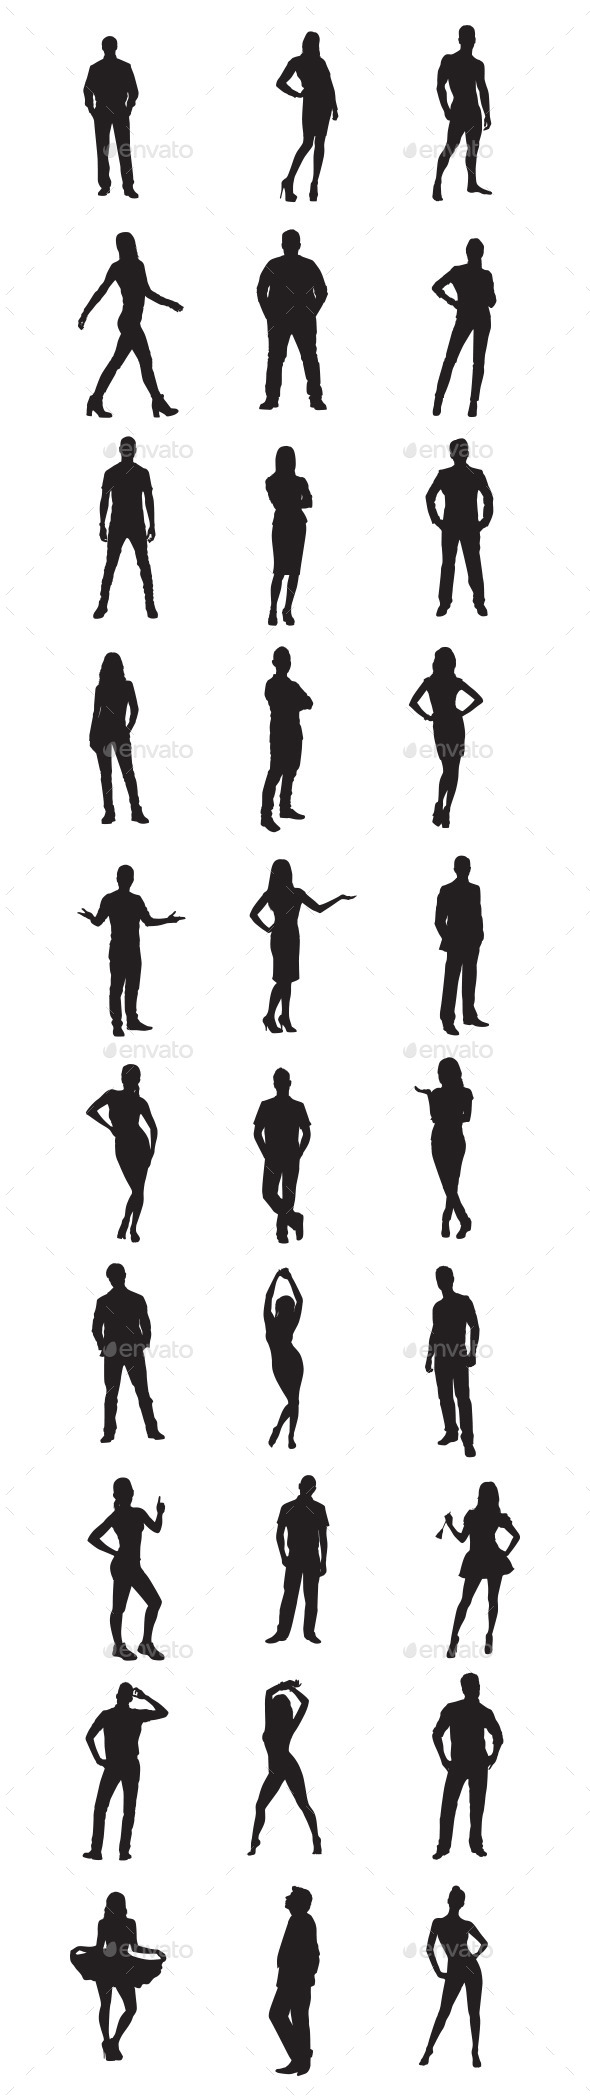 GraphicRiver People Silhouettes 9753783